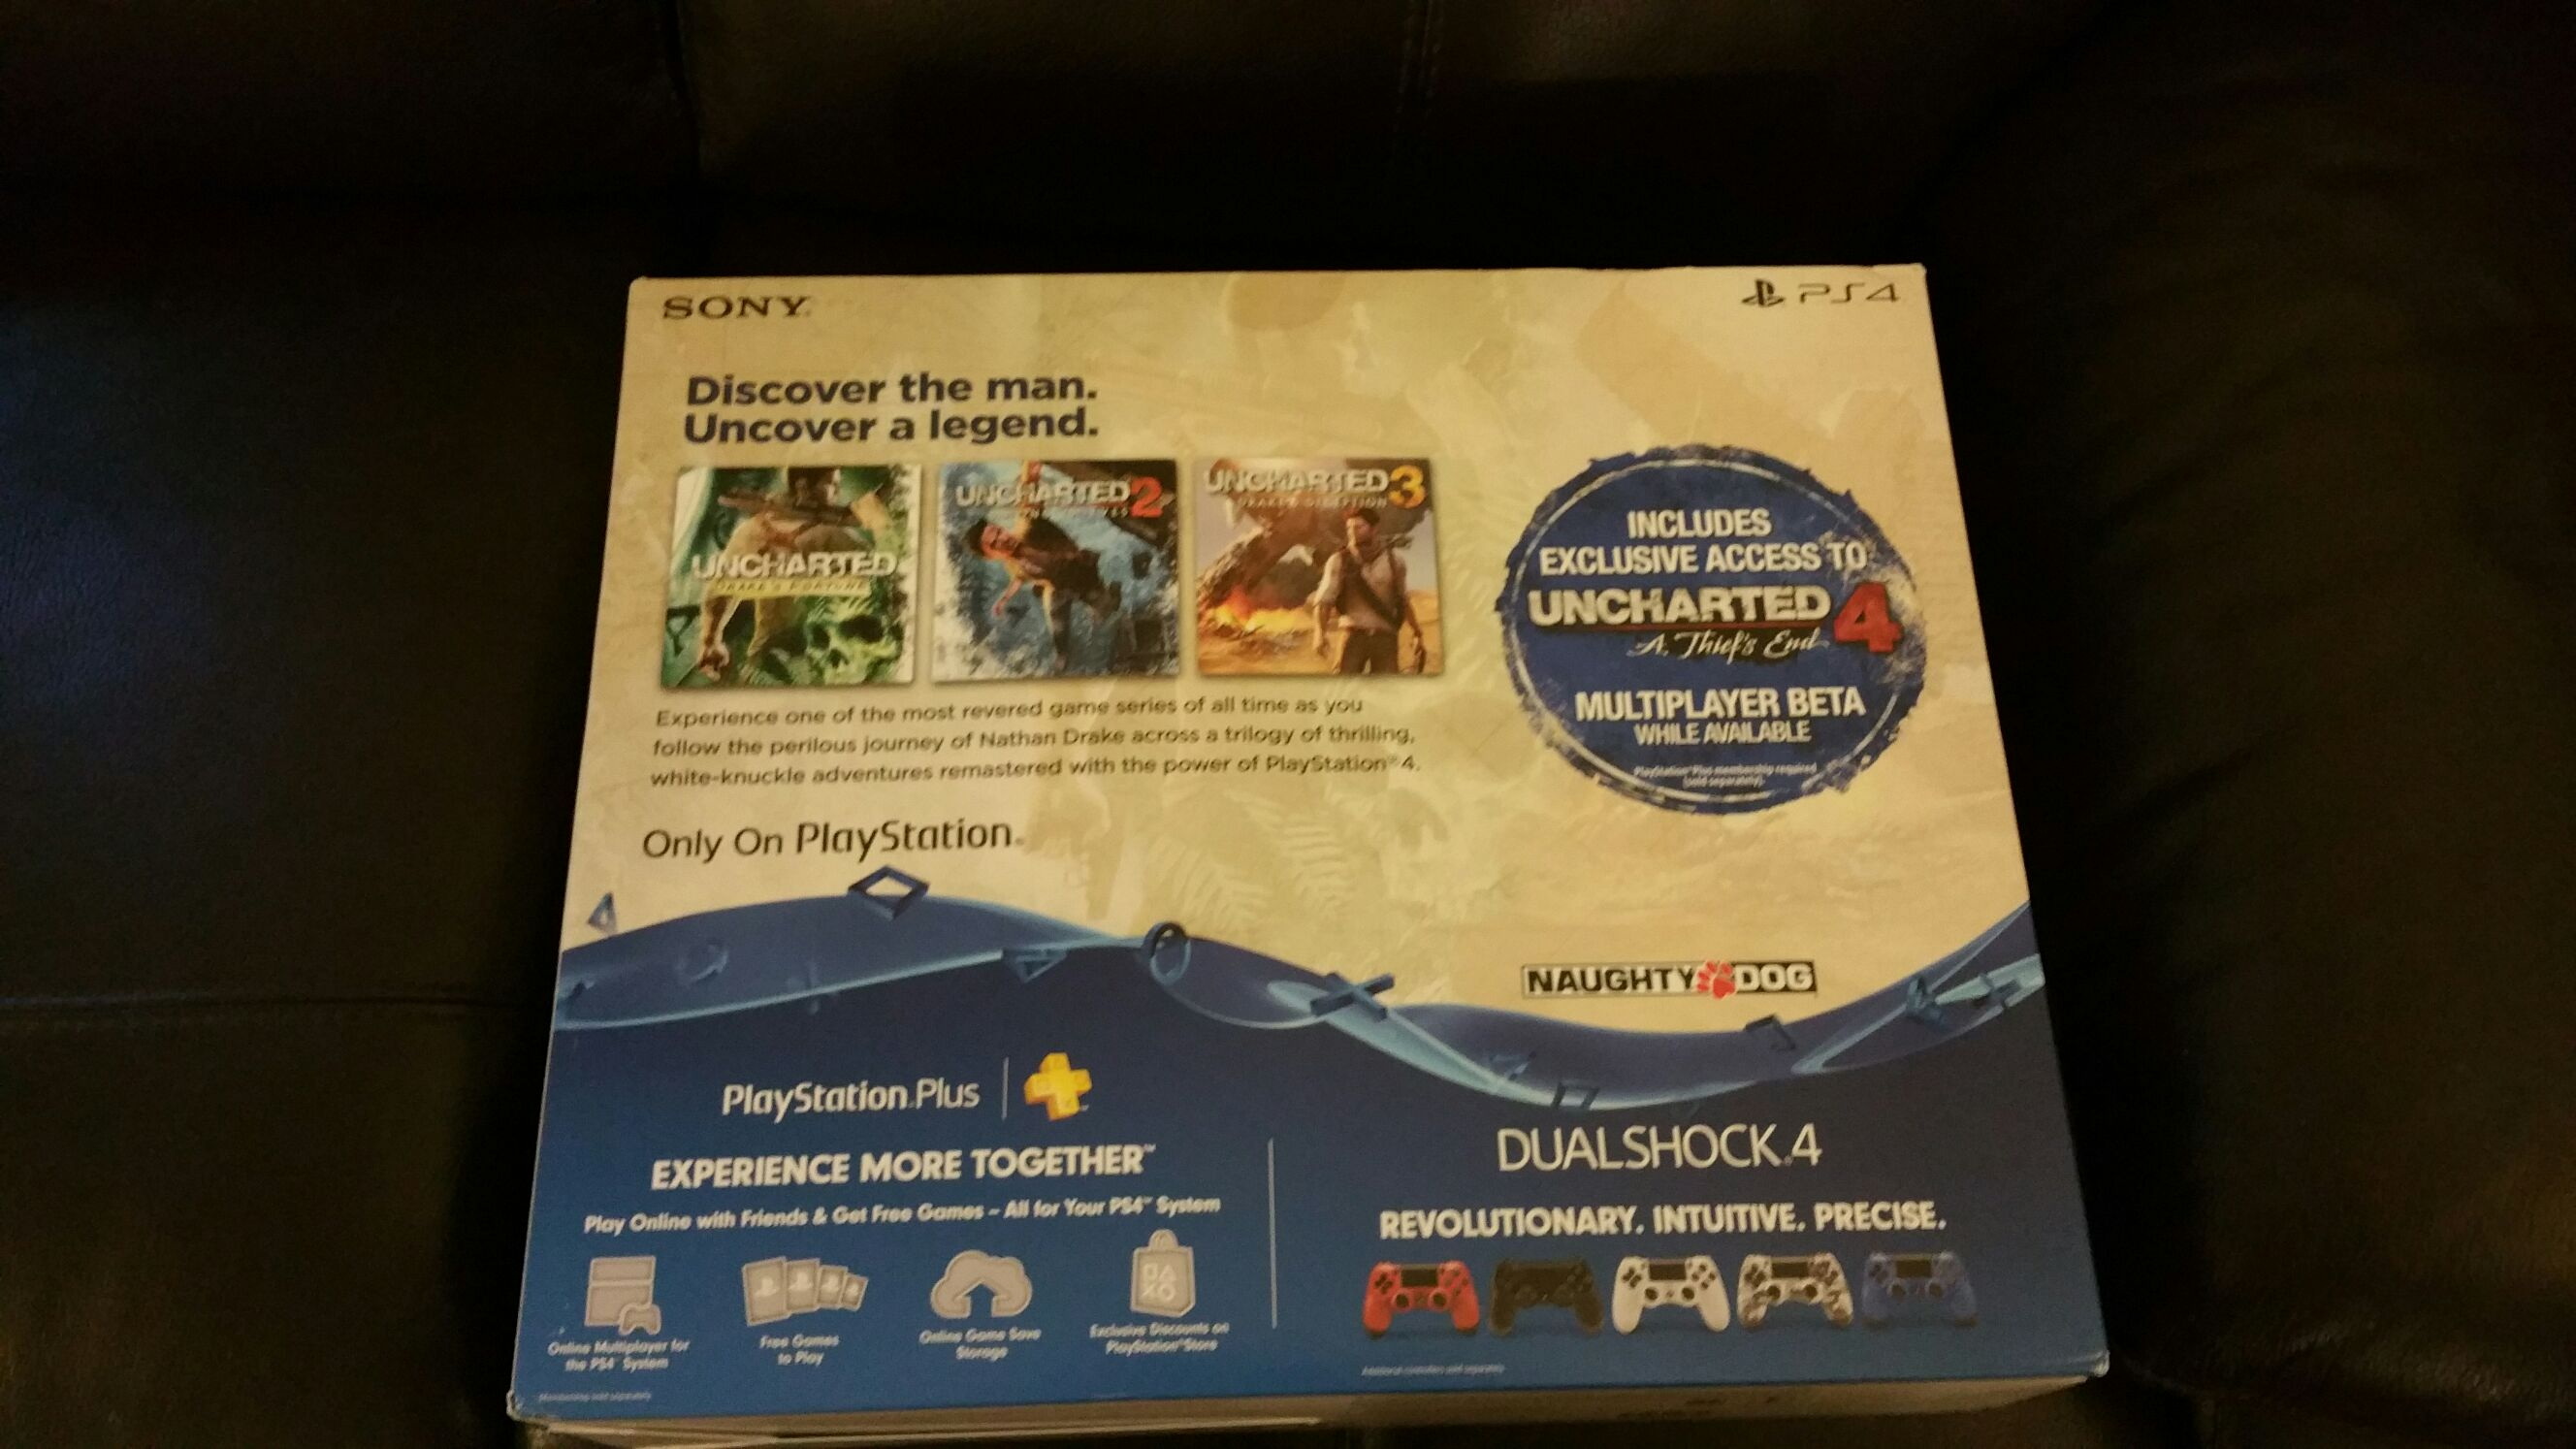 Uncharted The Nathan Drake Collection 500gb Ps4 Bundle Video